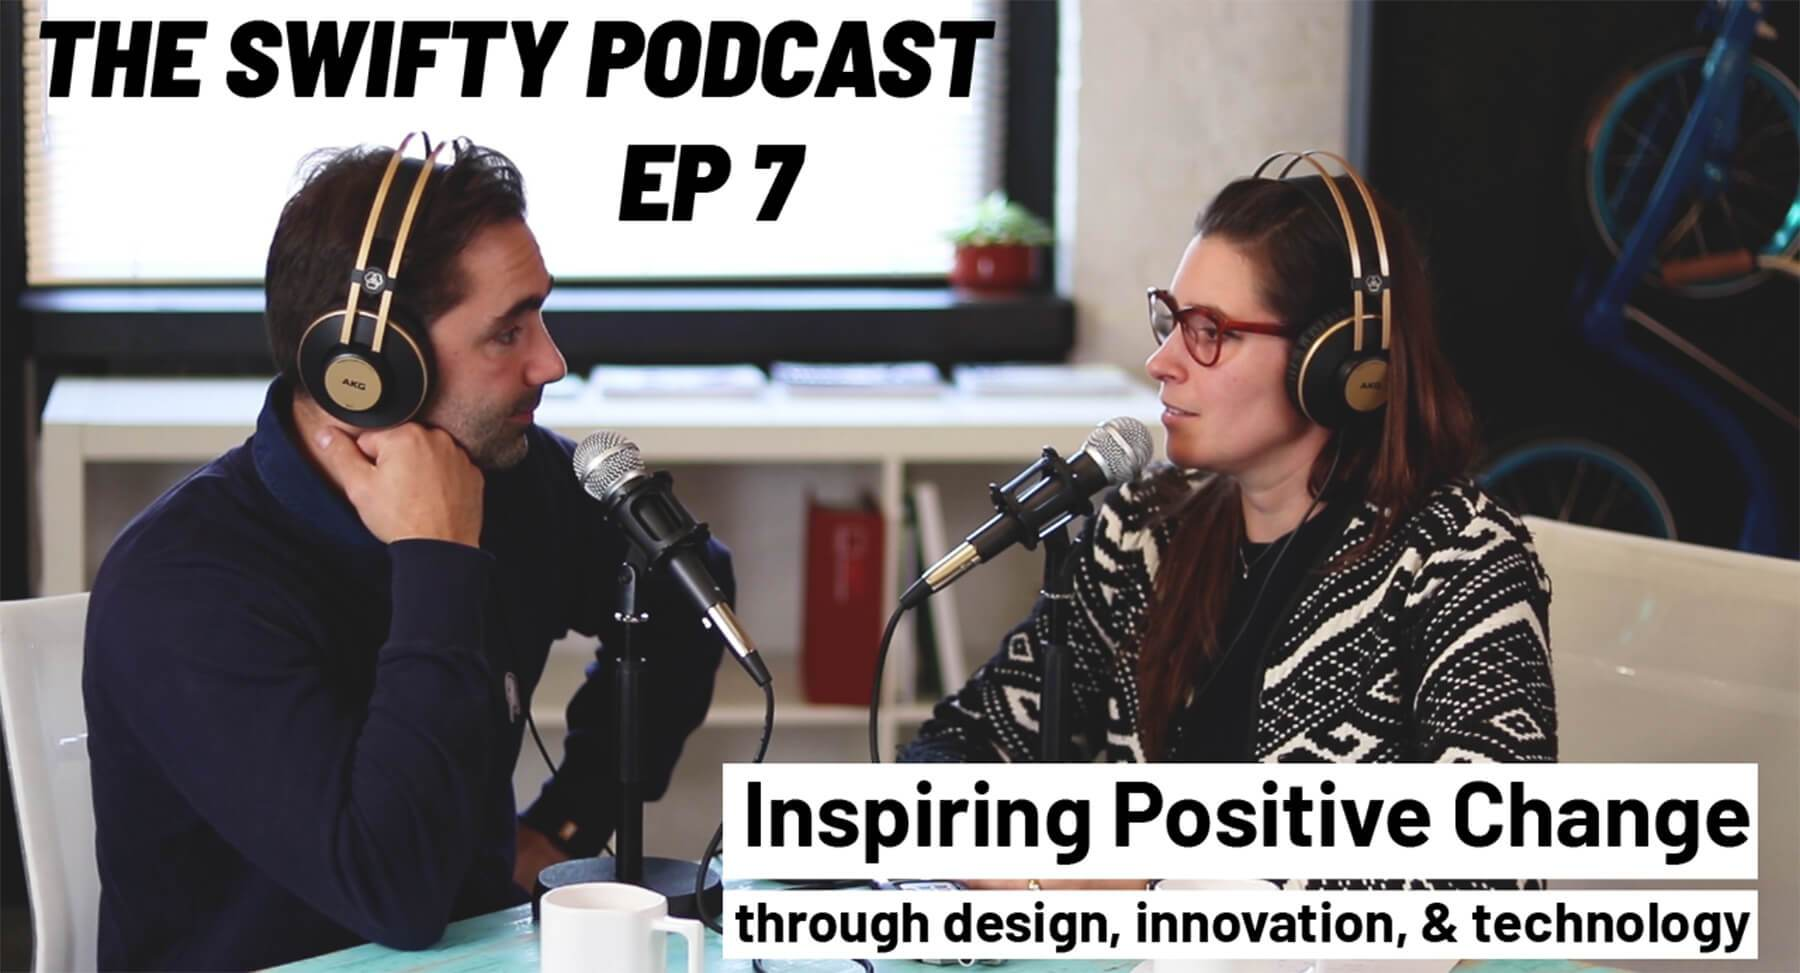 positive podcasts, design podcast